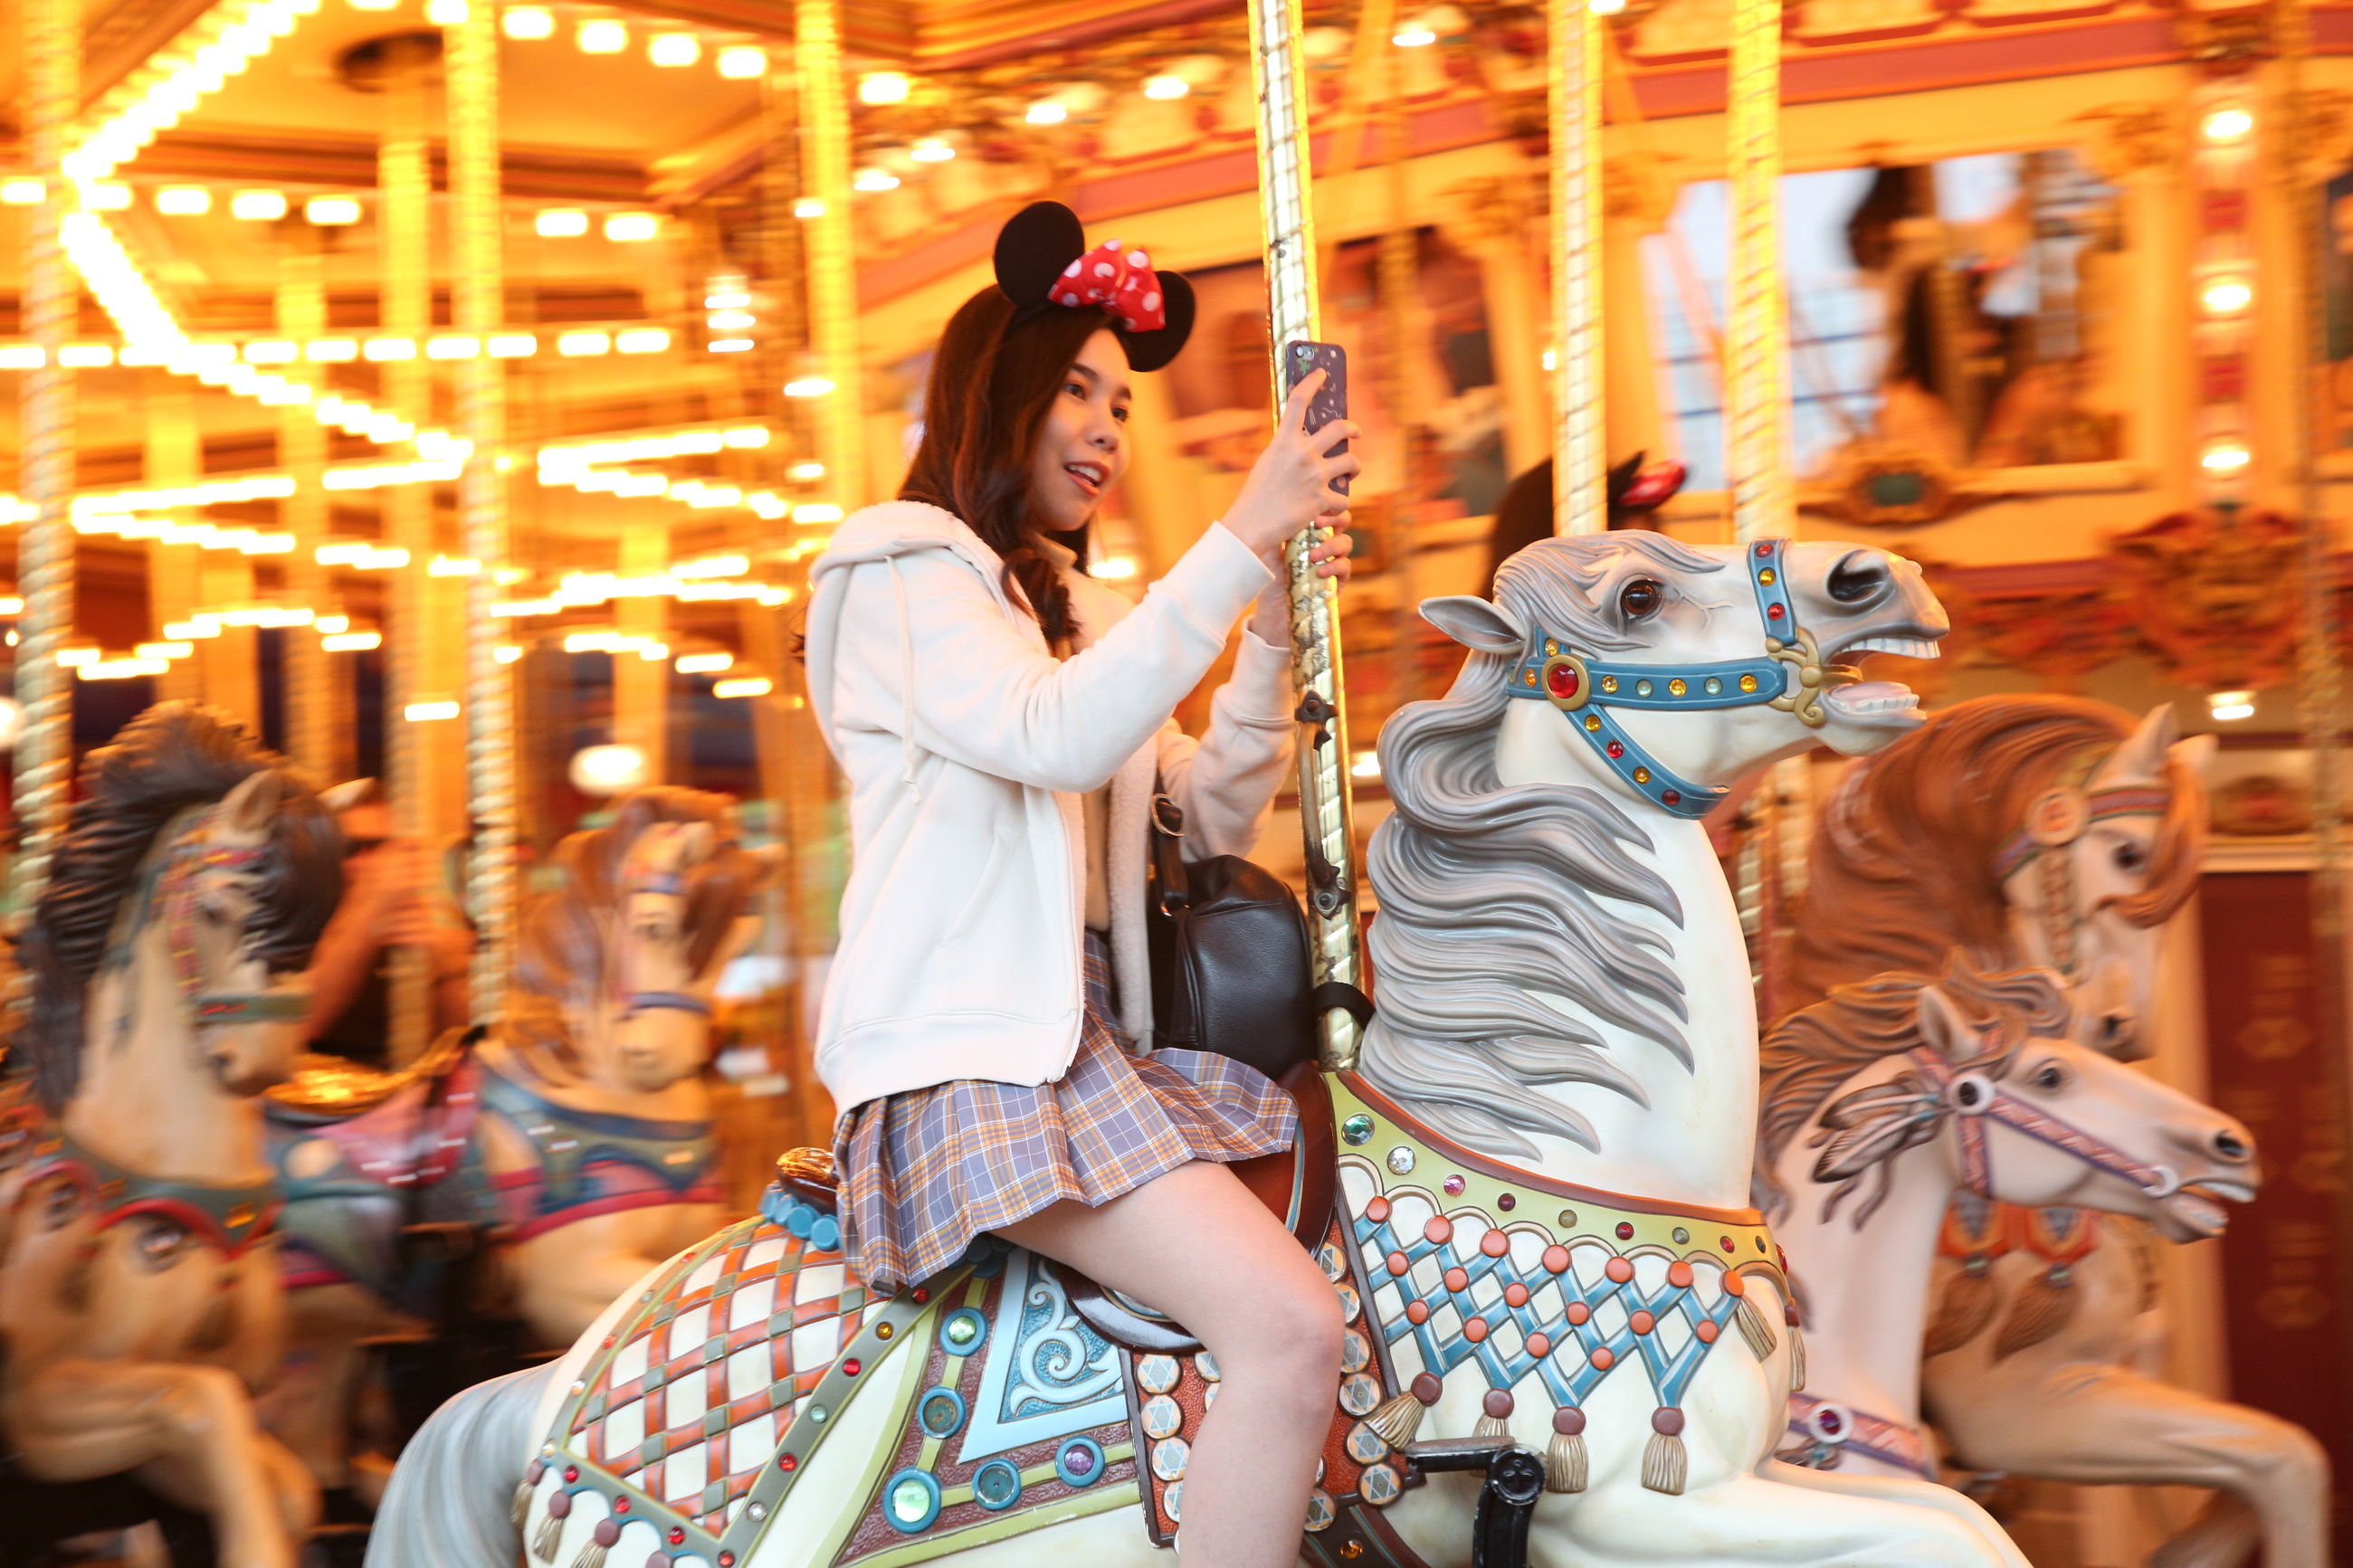 amusement park, amusement park ride, carousel, women, leisure activity, real people, lifestyles, illuminated, representation, arts culture and entertainment, adult, people, enjoyment, group of people, three quarter length, motion, casual clothing, livestock, outdoors